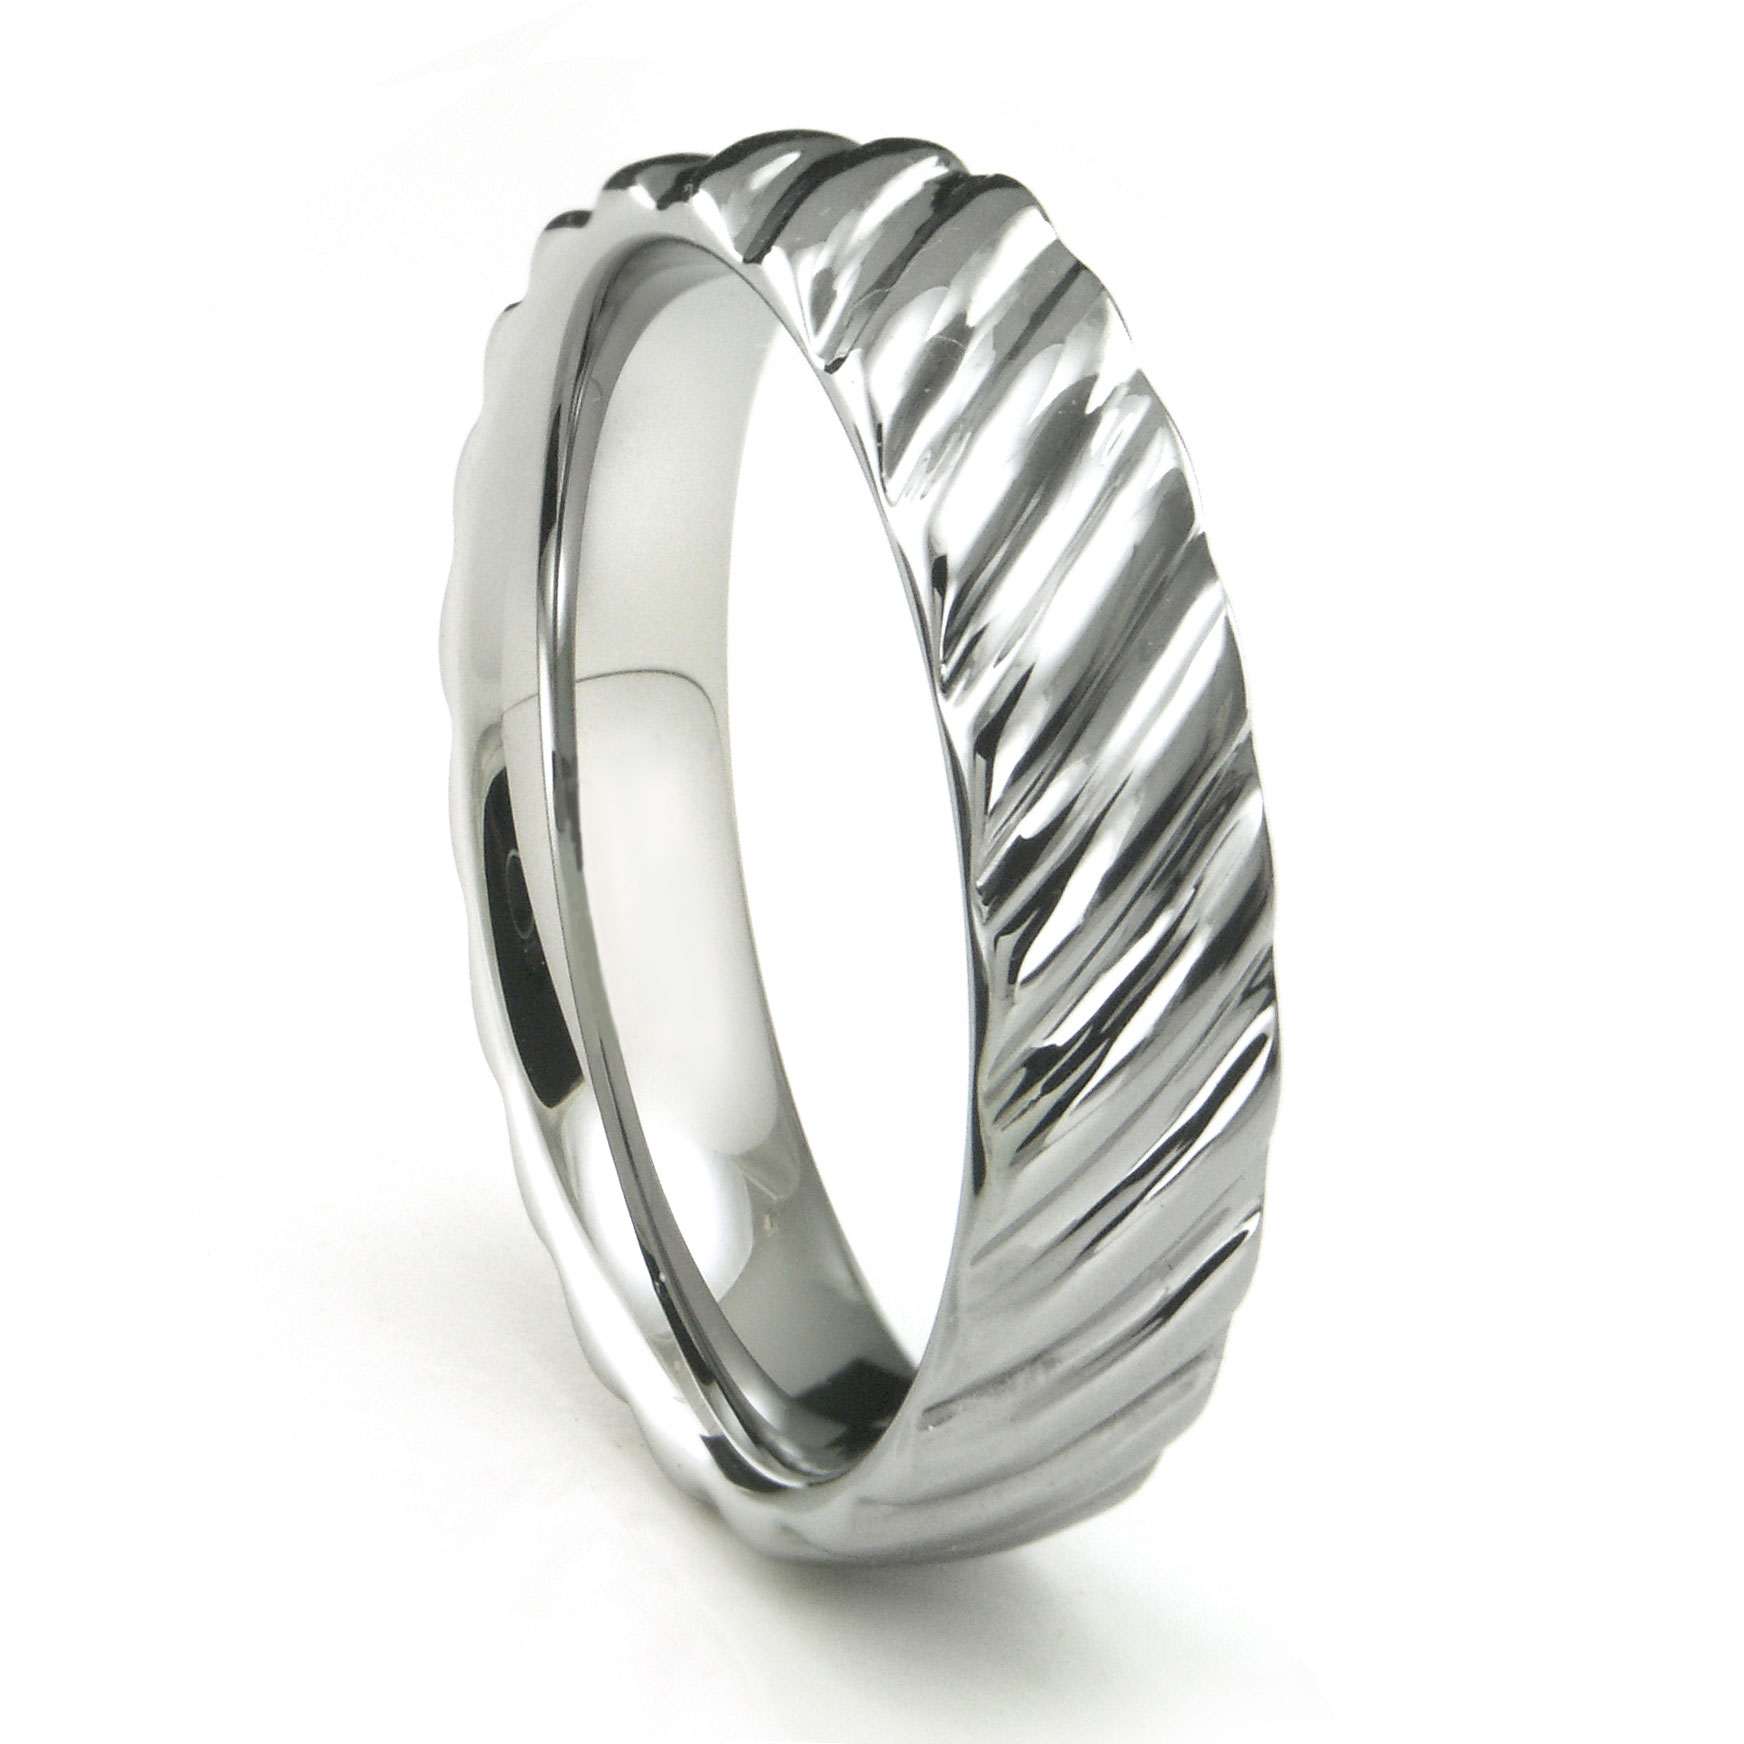 pin tungsten wedding mens engagement celtic rings carbide ring bands